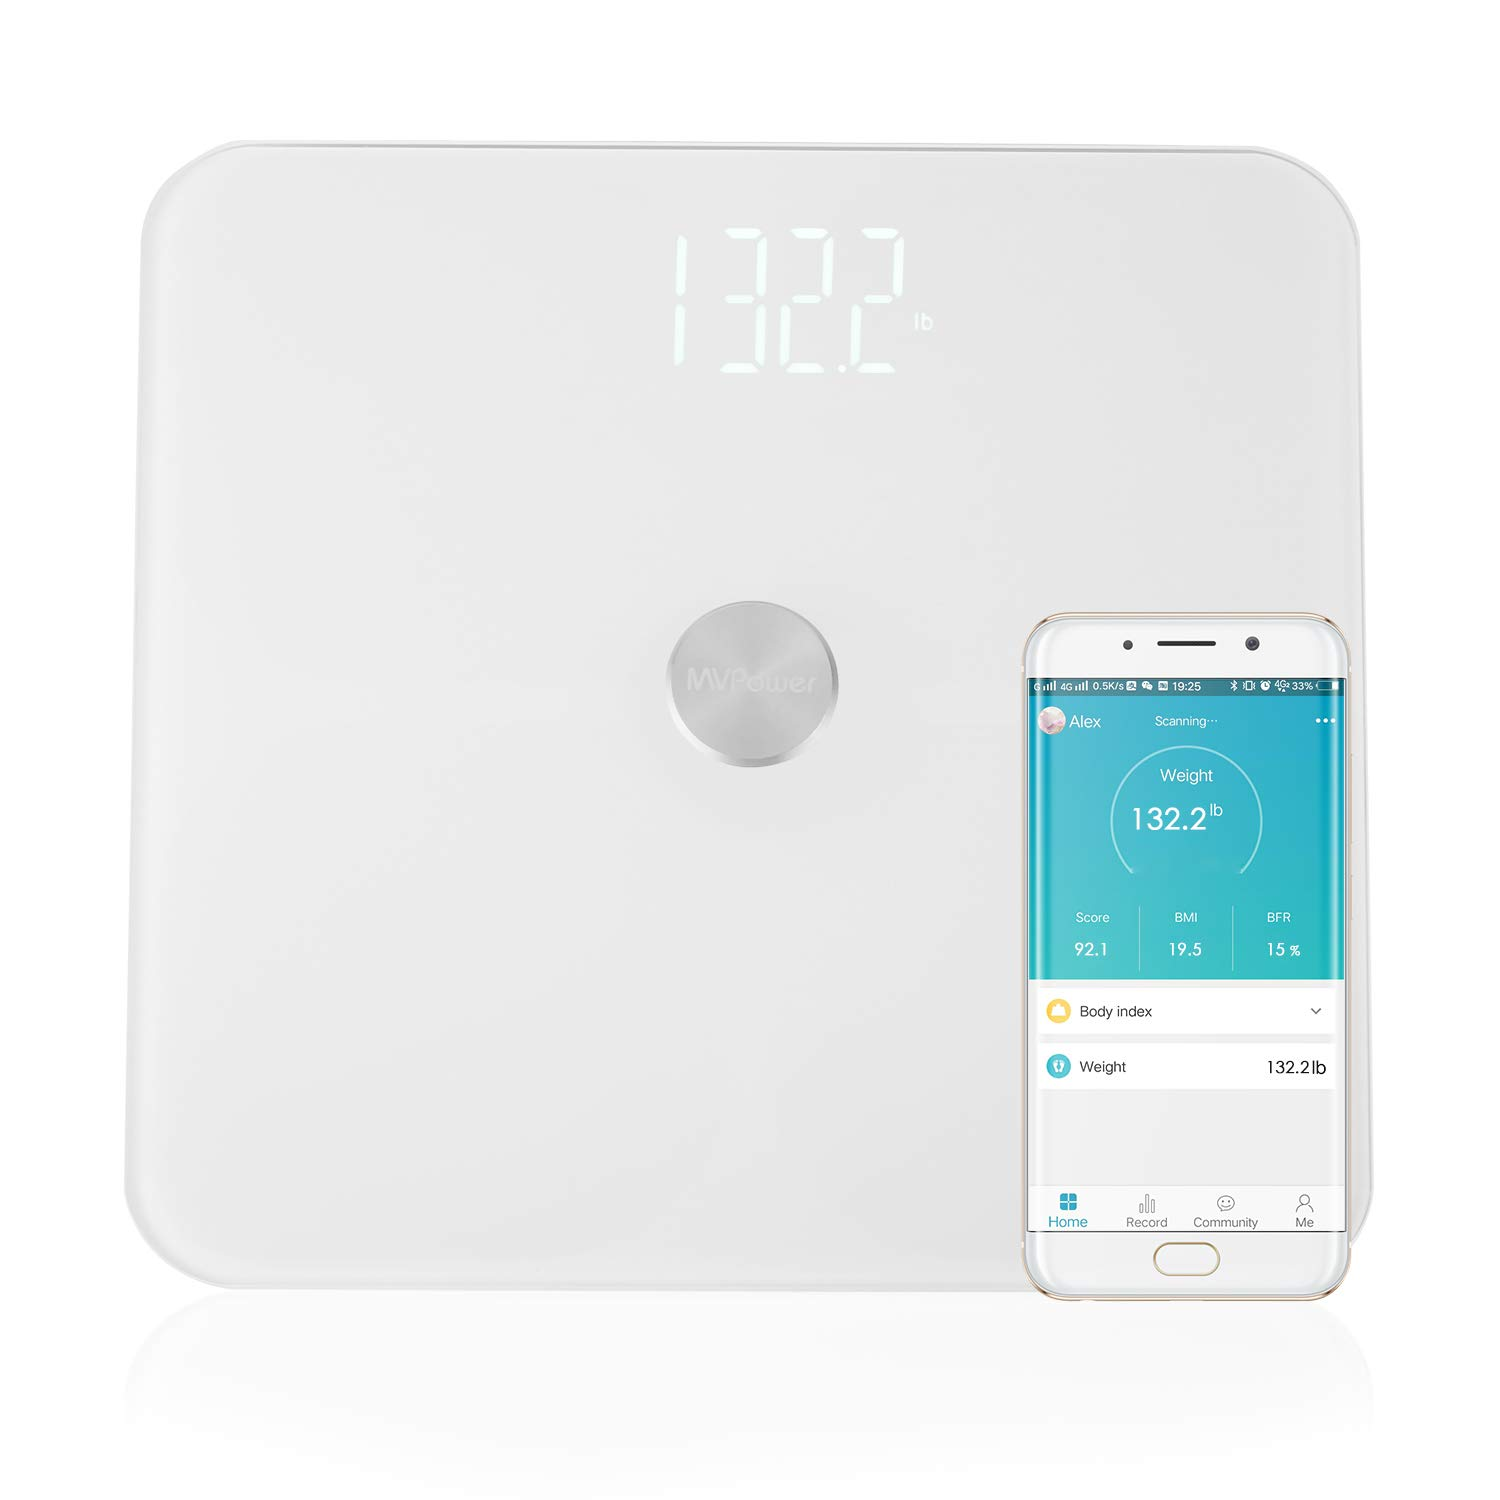 MVPower Bluetooth Body Fat Scale-Smart BMI Digital Bathroom Wireless Weight Scale with ITO Conductive Glass,Body Composition Analyzer with Smartphone App, 400 lb(Batteries Included)